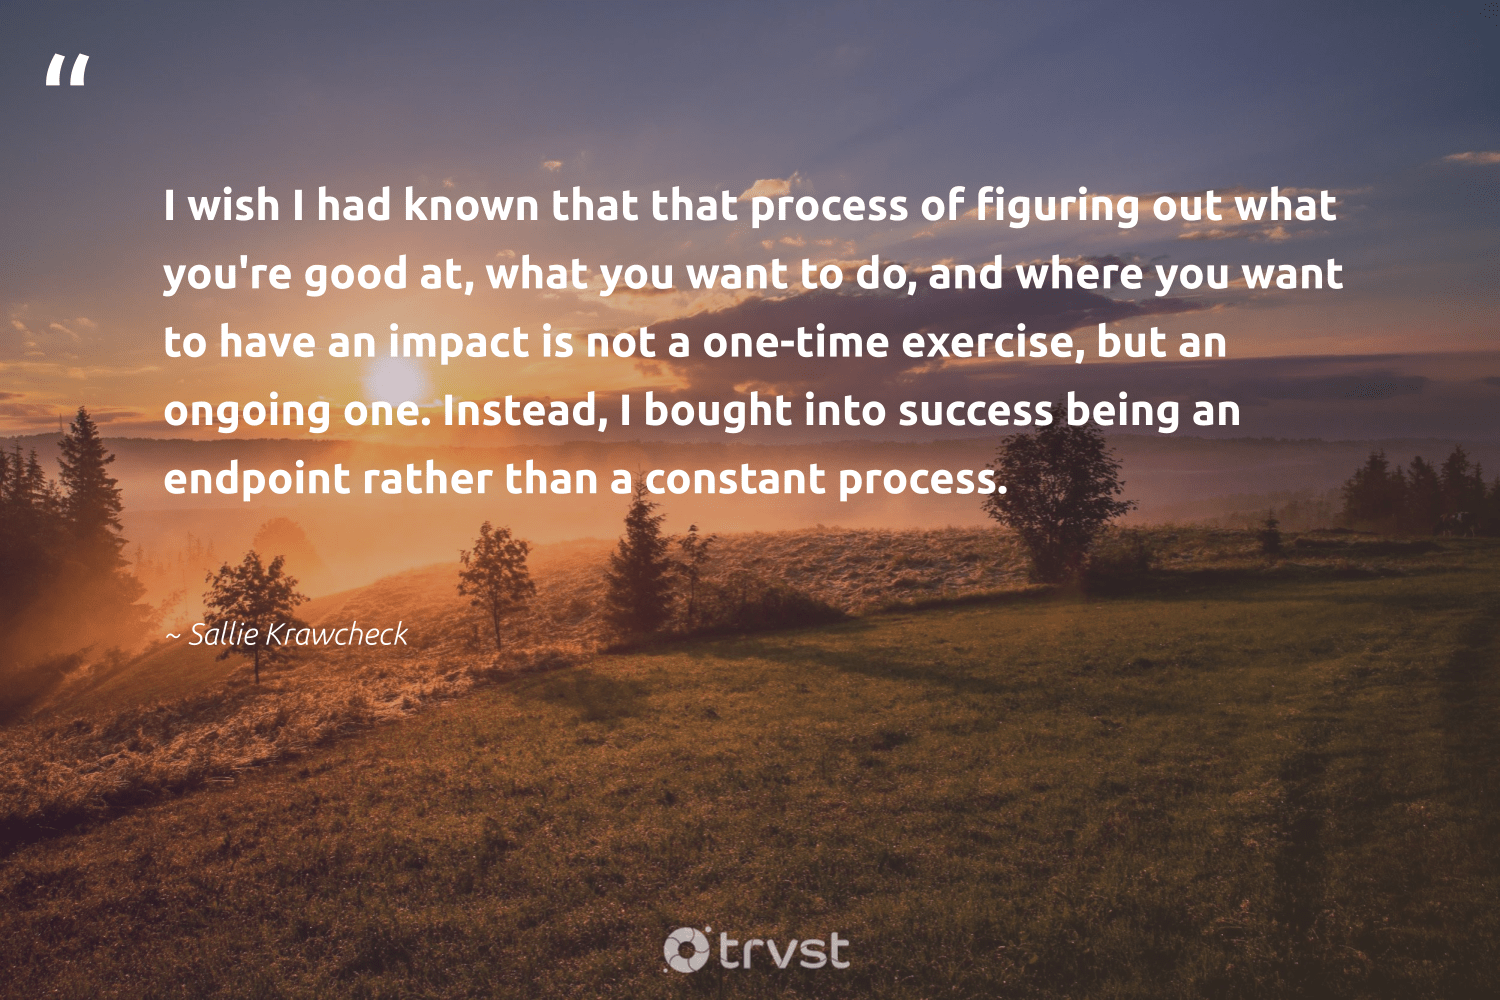 """I wish I had known that that process of figuring out what you're good at, what you want to do, and where you want to have an impact is not a one-time exercise, but an ongoing one. Instead, I bought into success being an endpoint rather than a constant process.""  - Sallie Krawcheck #trvst #quotes #impact #exercise #success #cardio #ethicalbusiness #togetherwecan #beinspired #fitness #weareallone #changemakers"